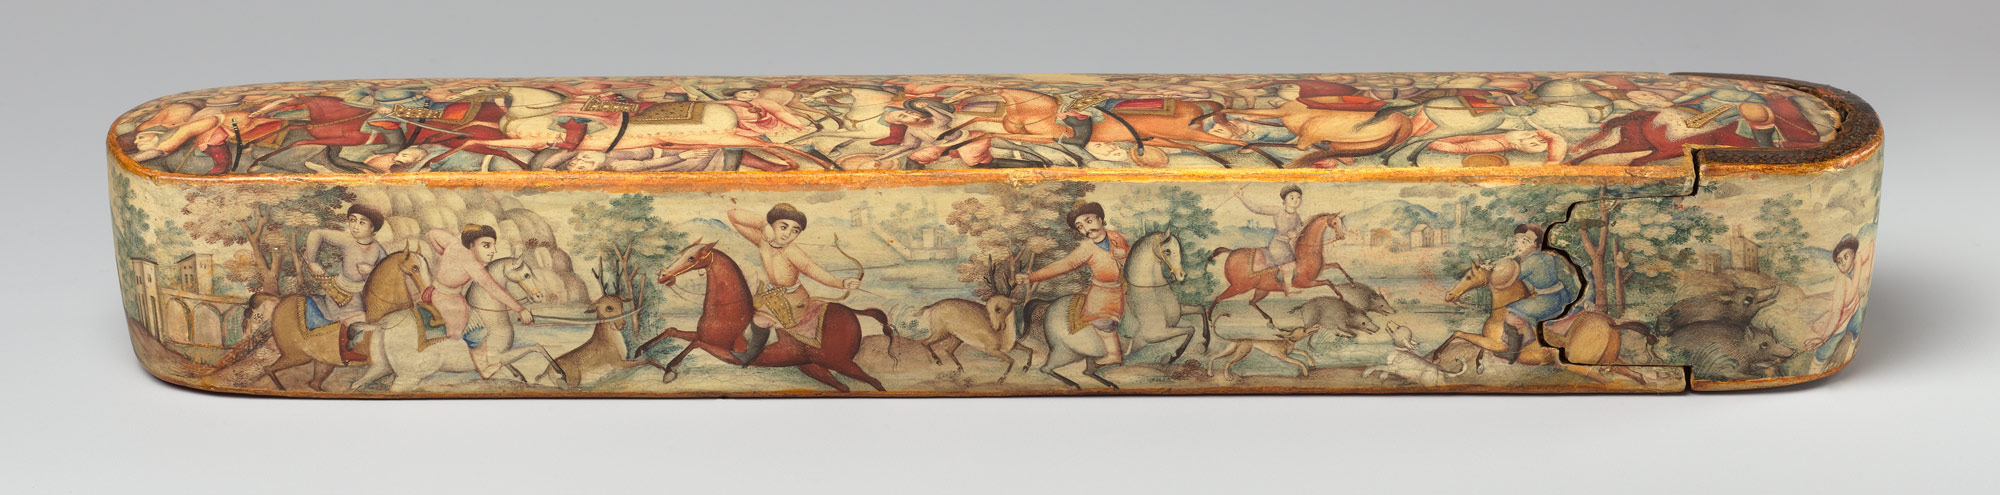 Pen Box (Qalamdan) Depicting Shah Ismail in a Battle against the Uzbeks